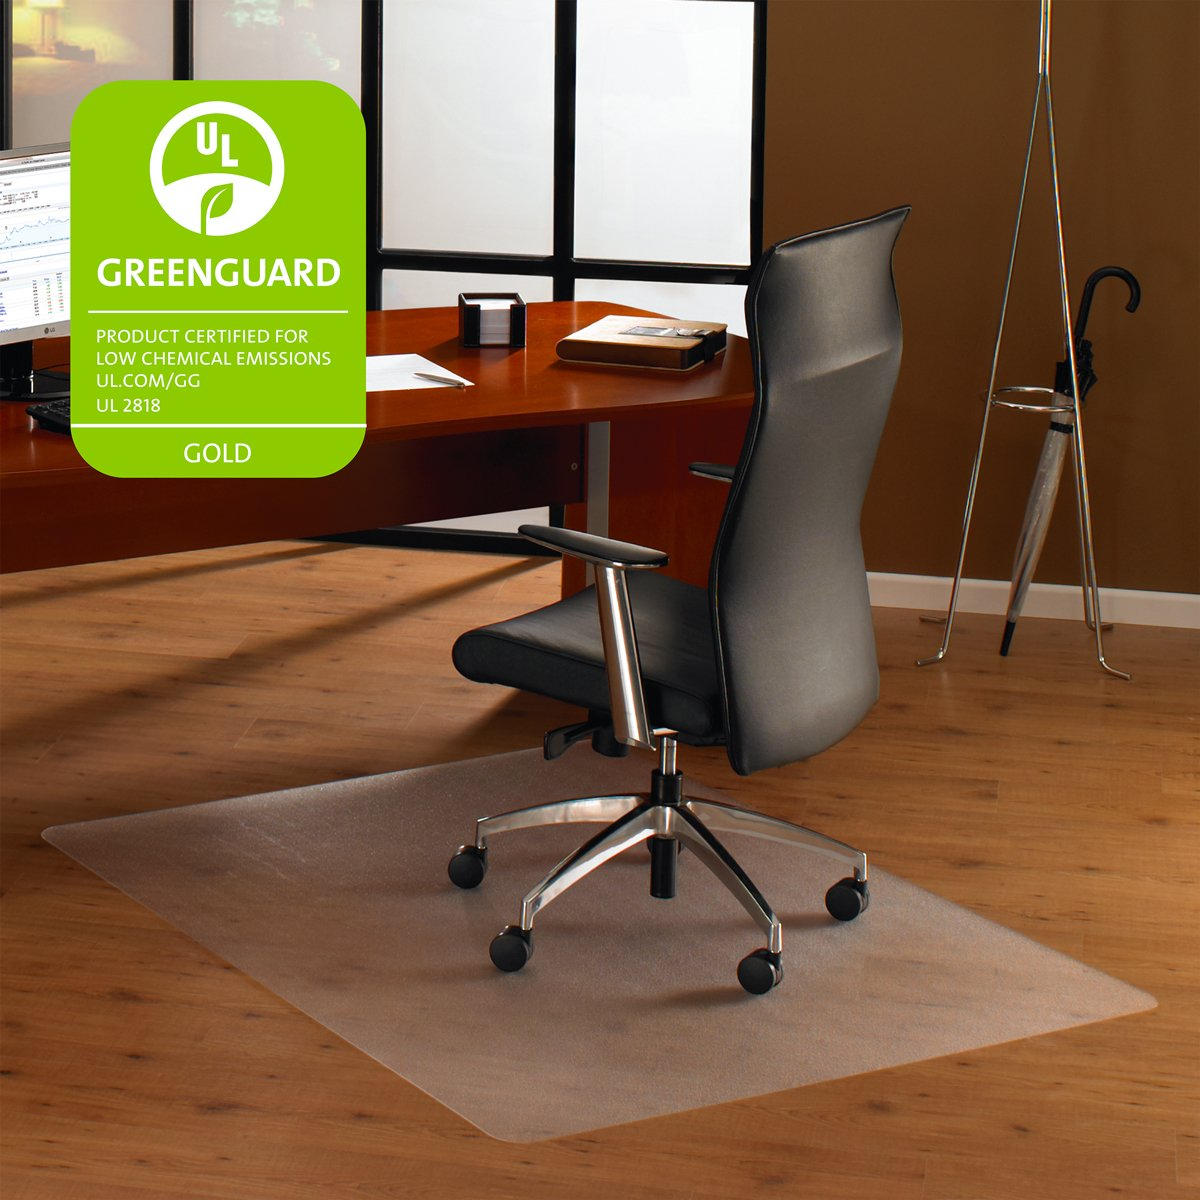 Amazon.com : Floortex EC128919ER Cleartex Ultimat Polycarbonate Chair Mat  For Hard Floors, 35 X 47, Clear : Office Products